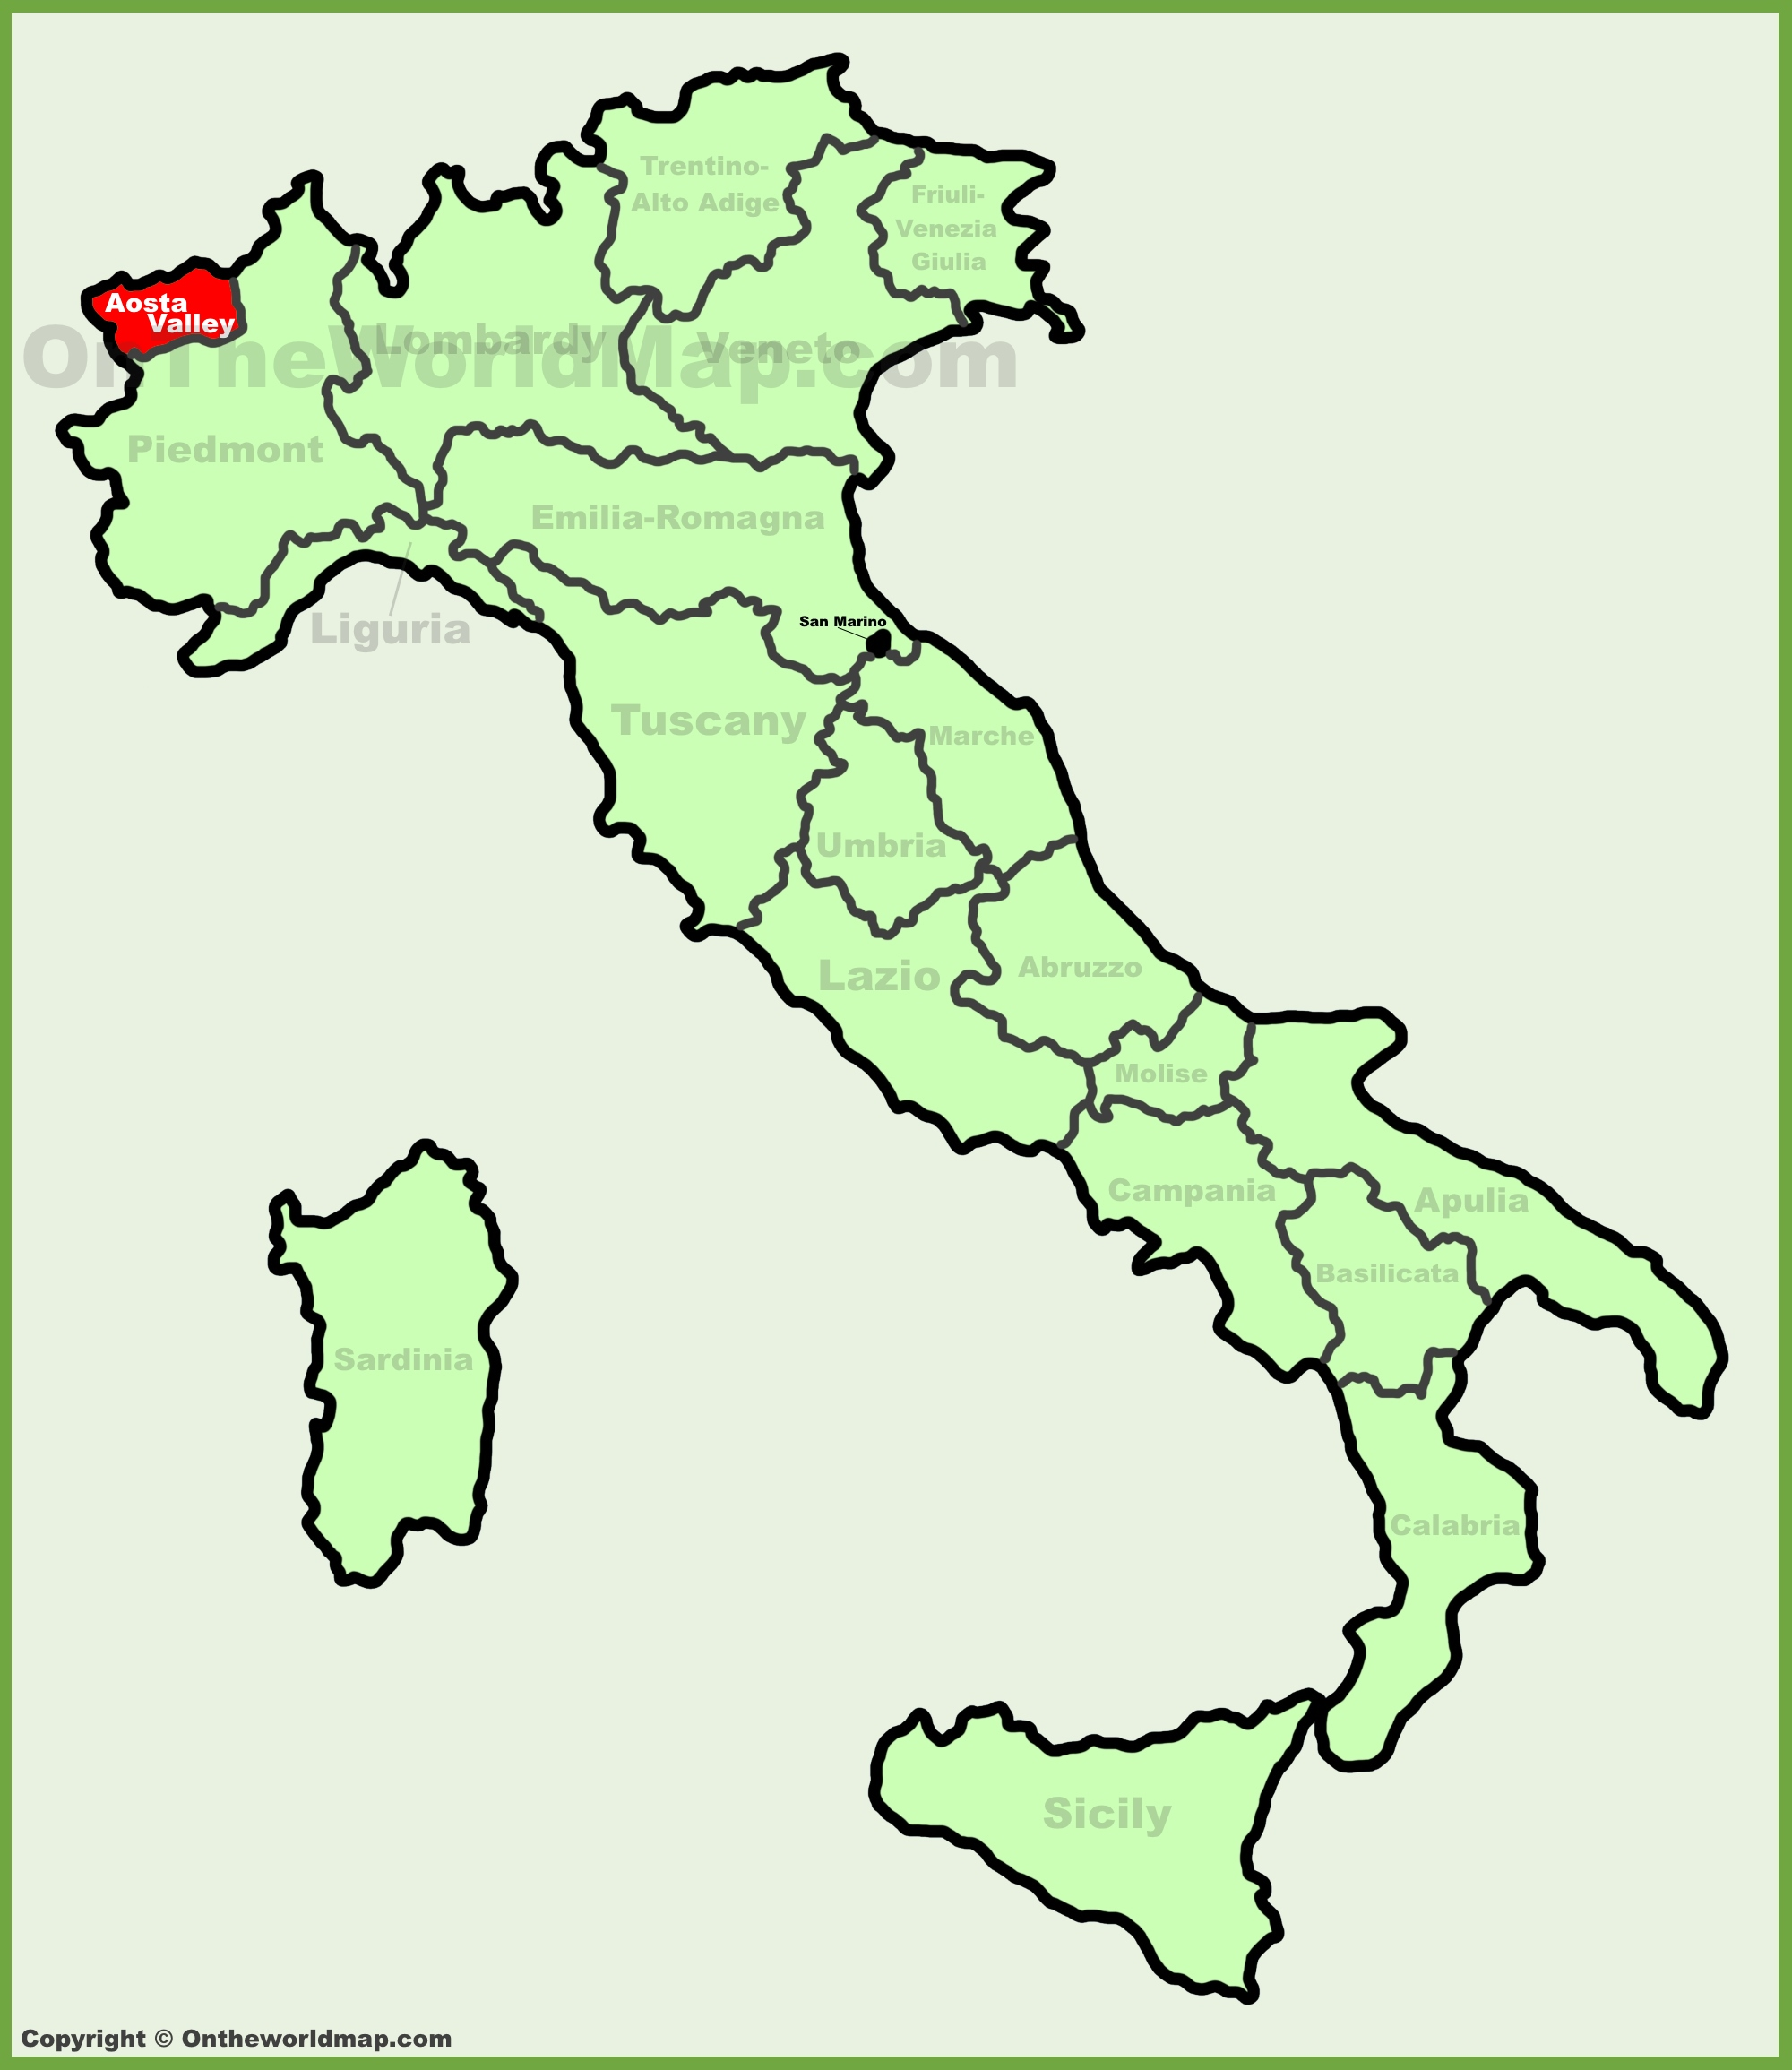 Aosta Valley location on the Italy map